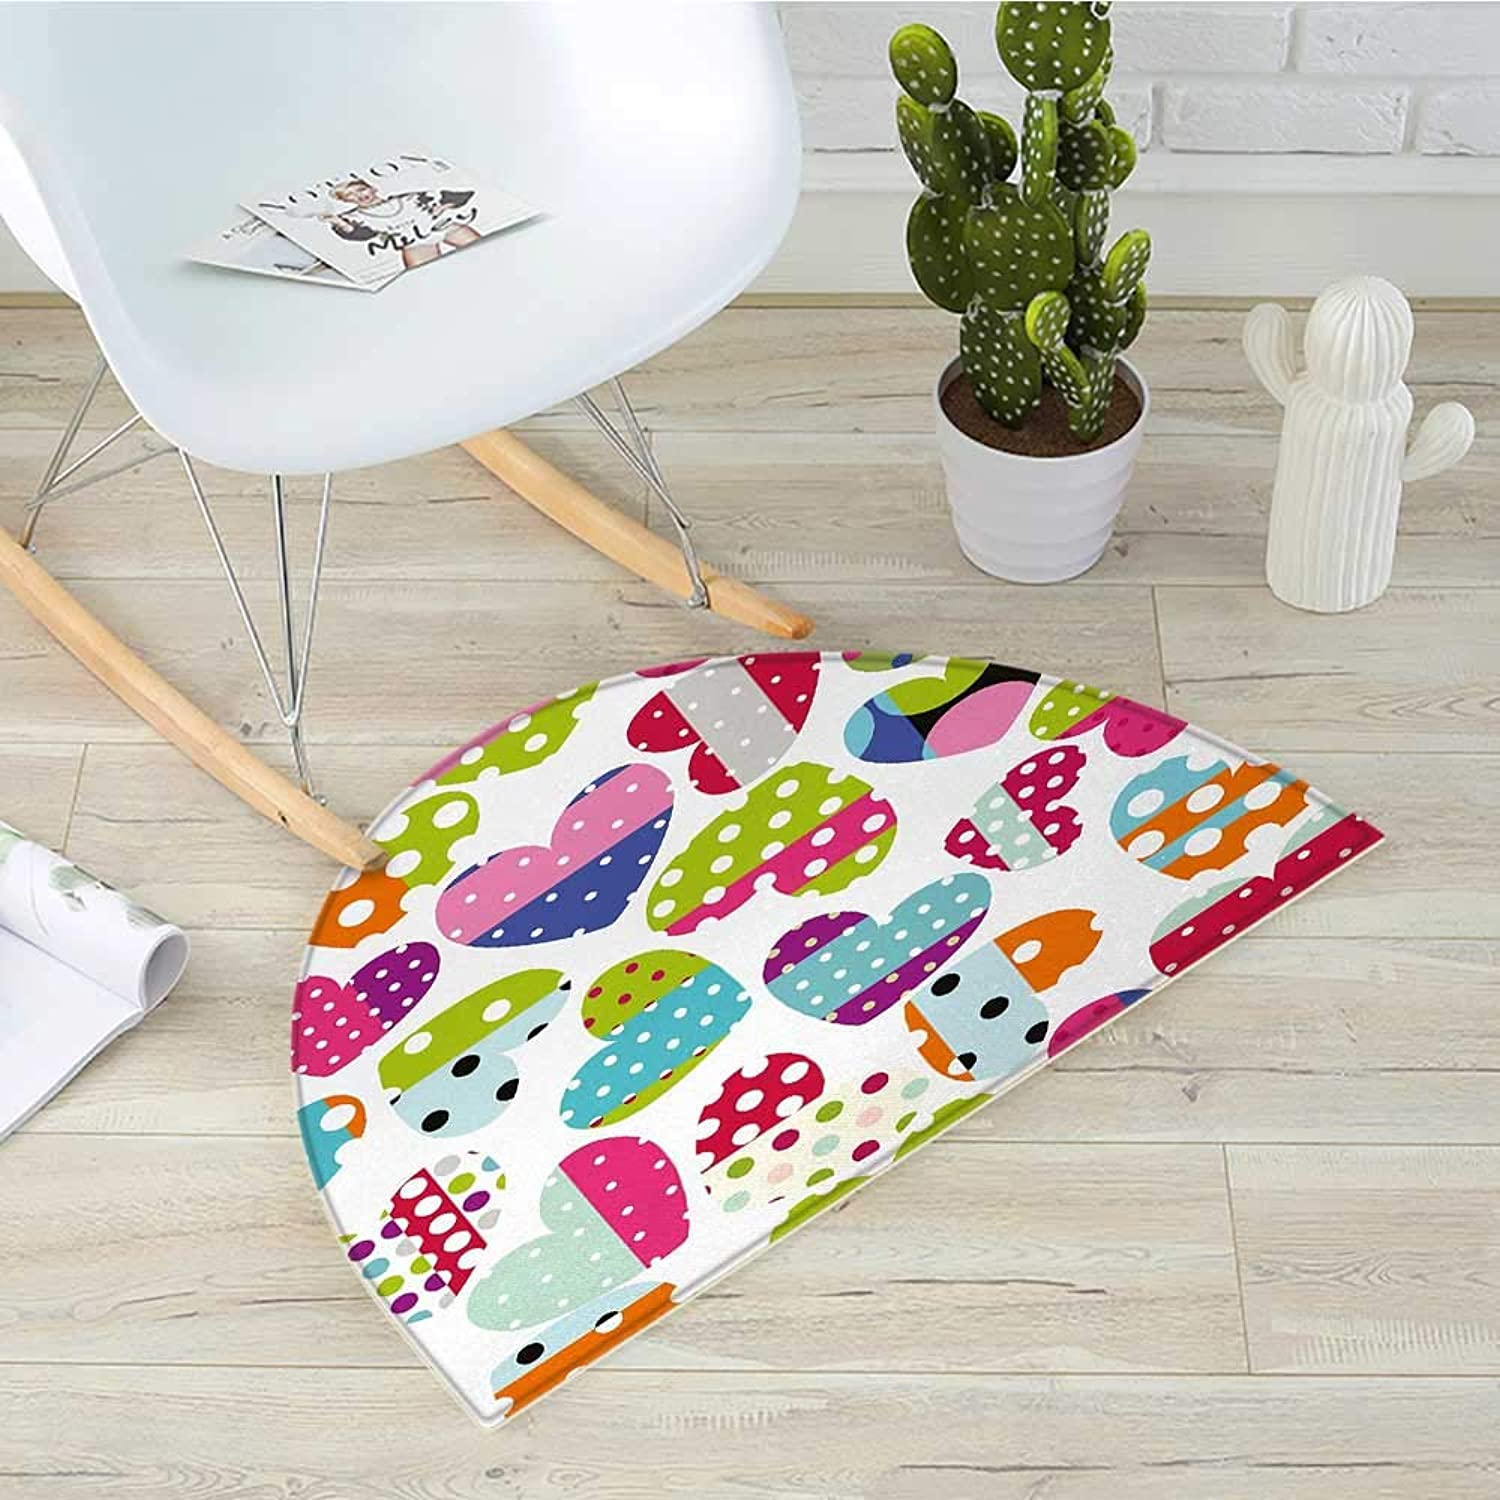 colorful Half Round Door mats Heart Shapes with Patches and Polka Dots Cute Cheerful Pattern Design Artwork Bathroom Mat H 31.5  xD 47.2  Multicolor